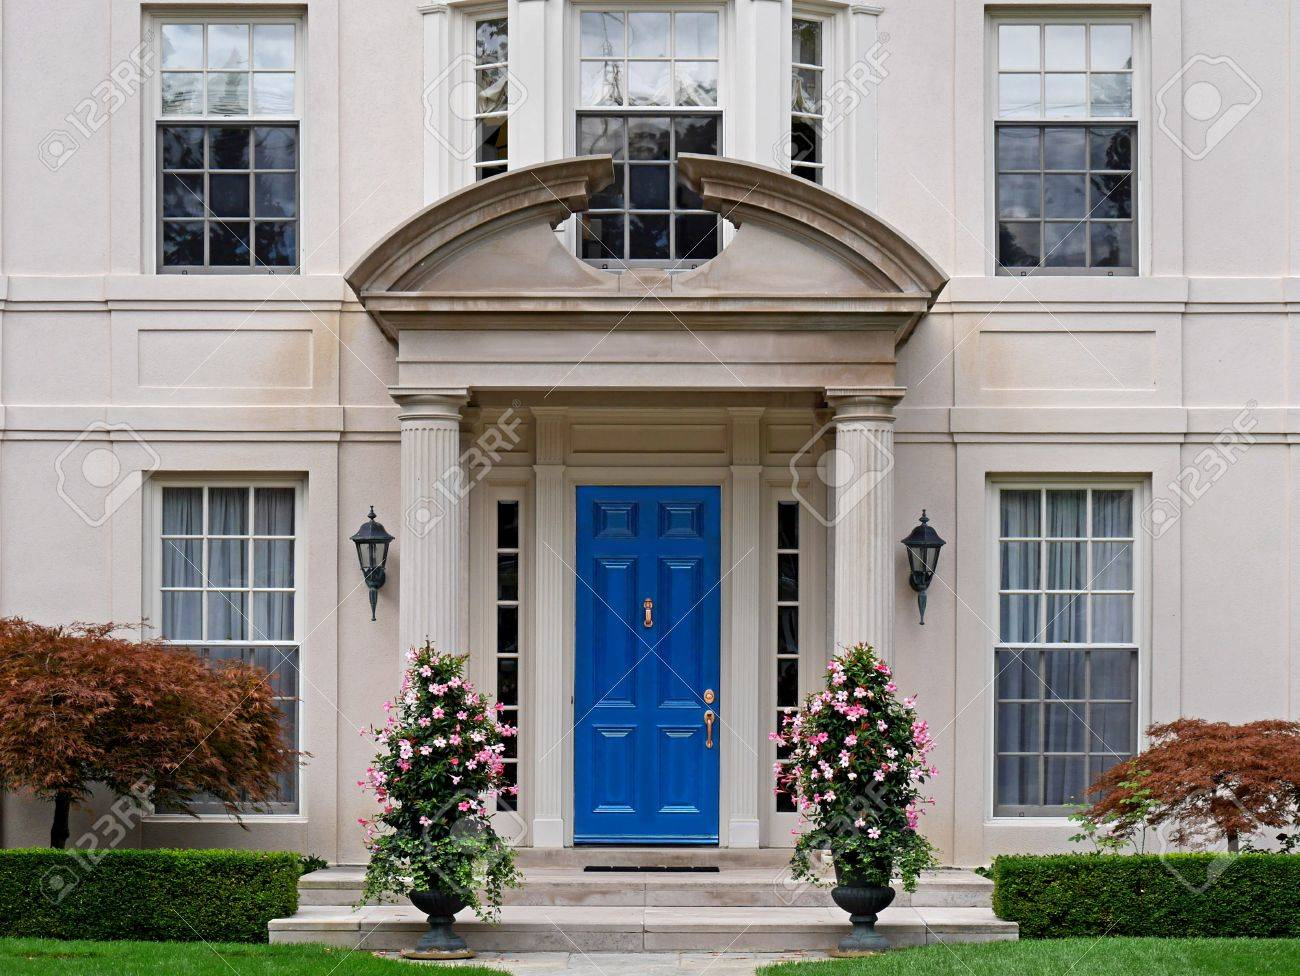 Front door of house with portico and columns Stock Photo - 51990885 & Front Door Of House With Portico And Columns Stock Photo Picture ... pezcame.com